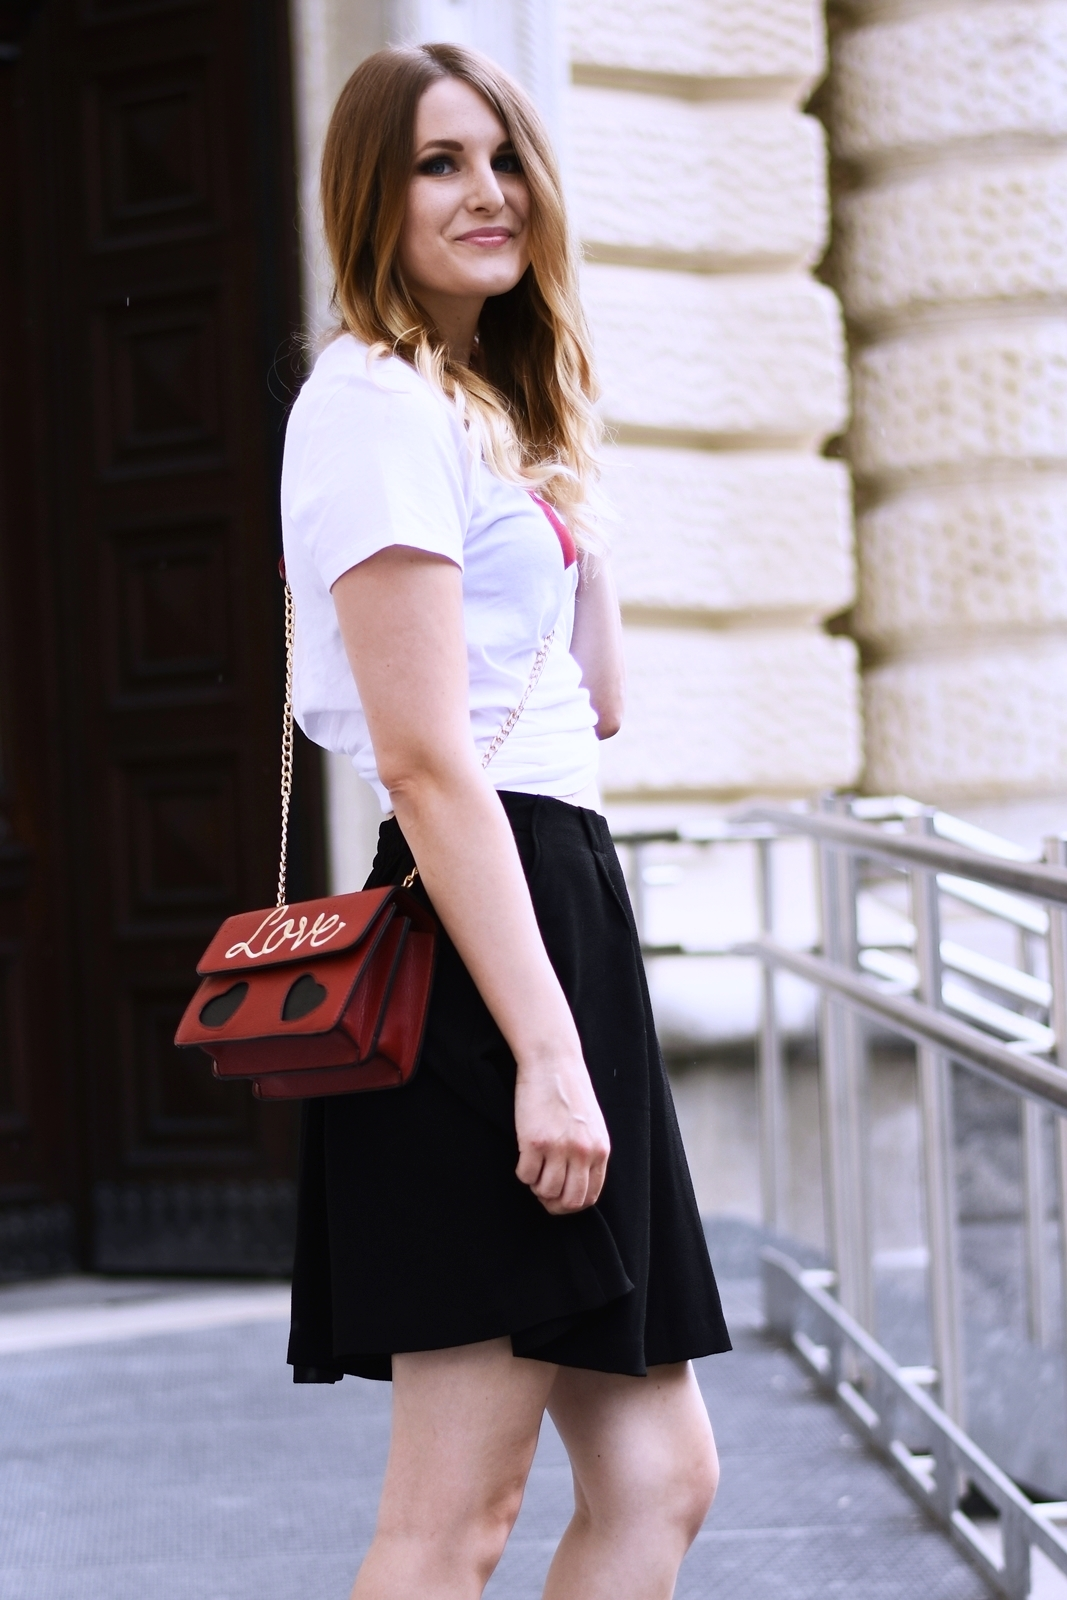 Brand Shirt kombinieren - so stylst du dieses Trend Teil - Levis - Statement - Love Bag - Basic - Rock - Converse - Fashionladyloves by Tamara Wagner Fashionblog